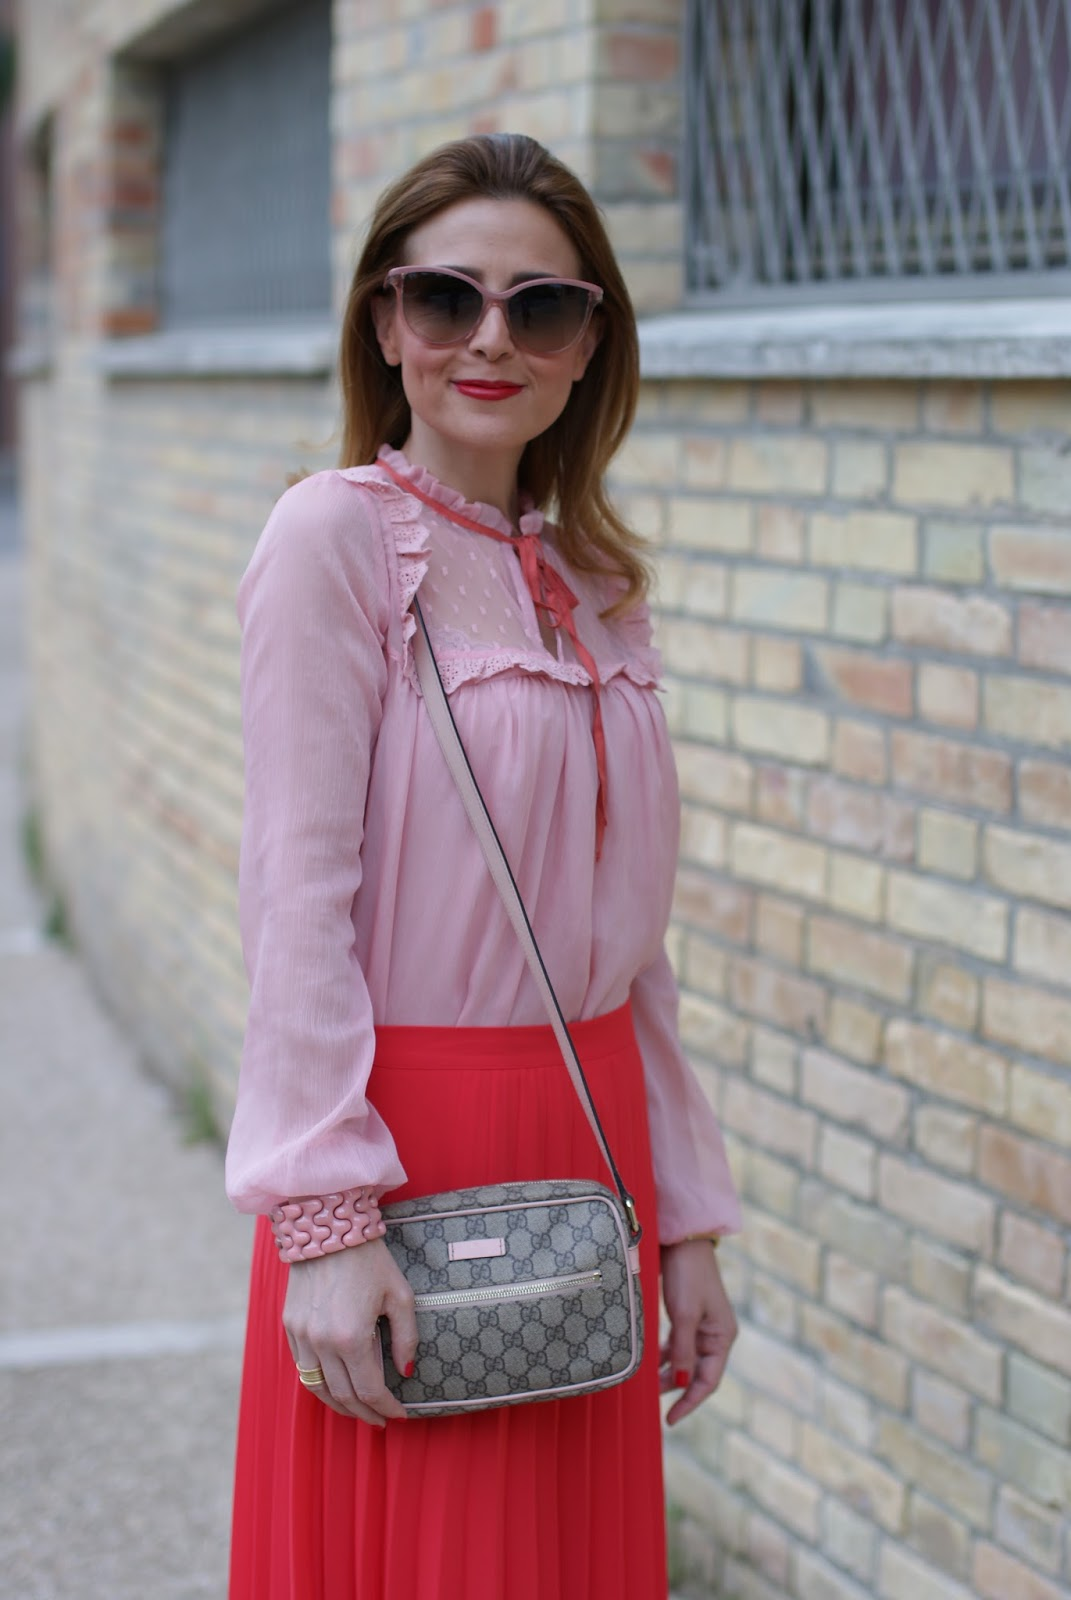 OVS camicia rosa con pizzo e nastro stile Gucci on Fashion and Cookies fashion blog, fashion blogger style